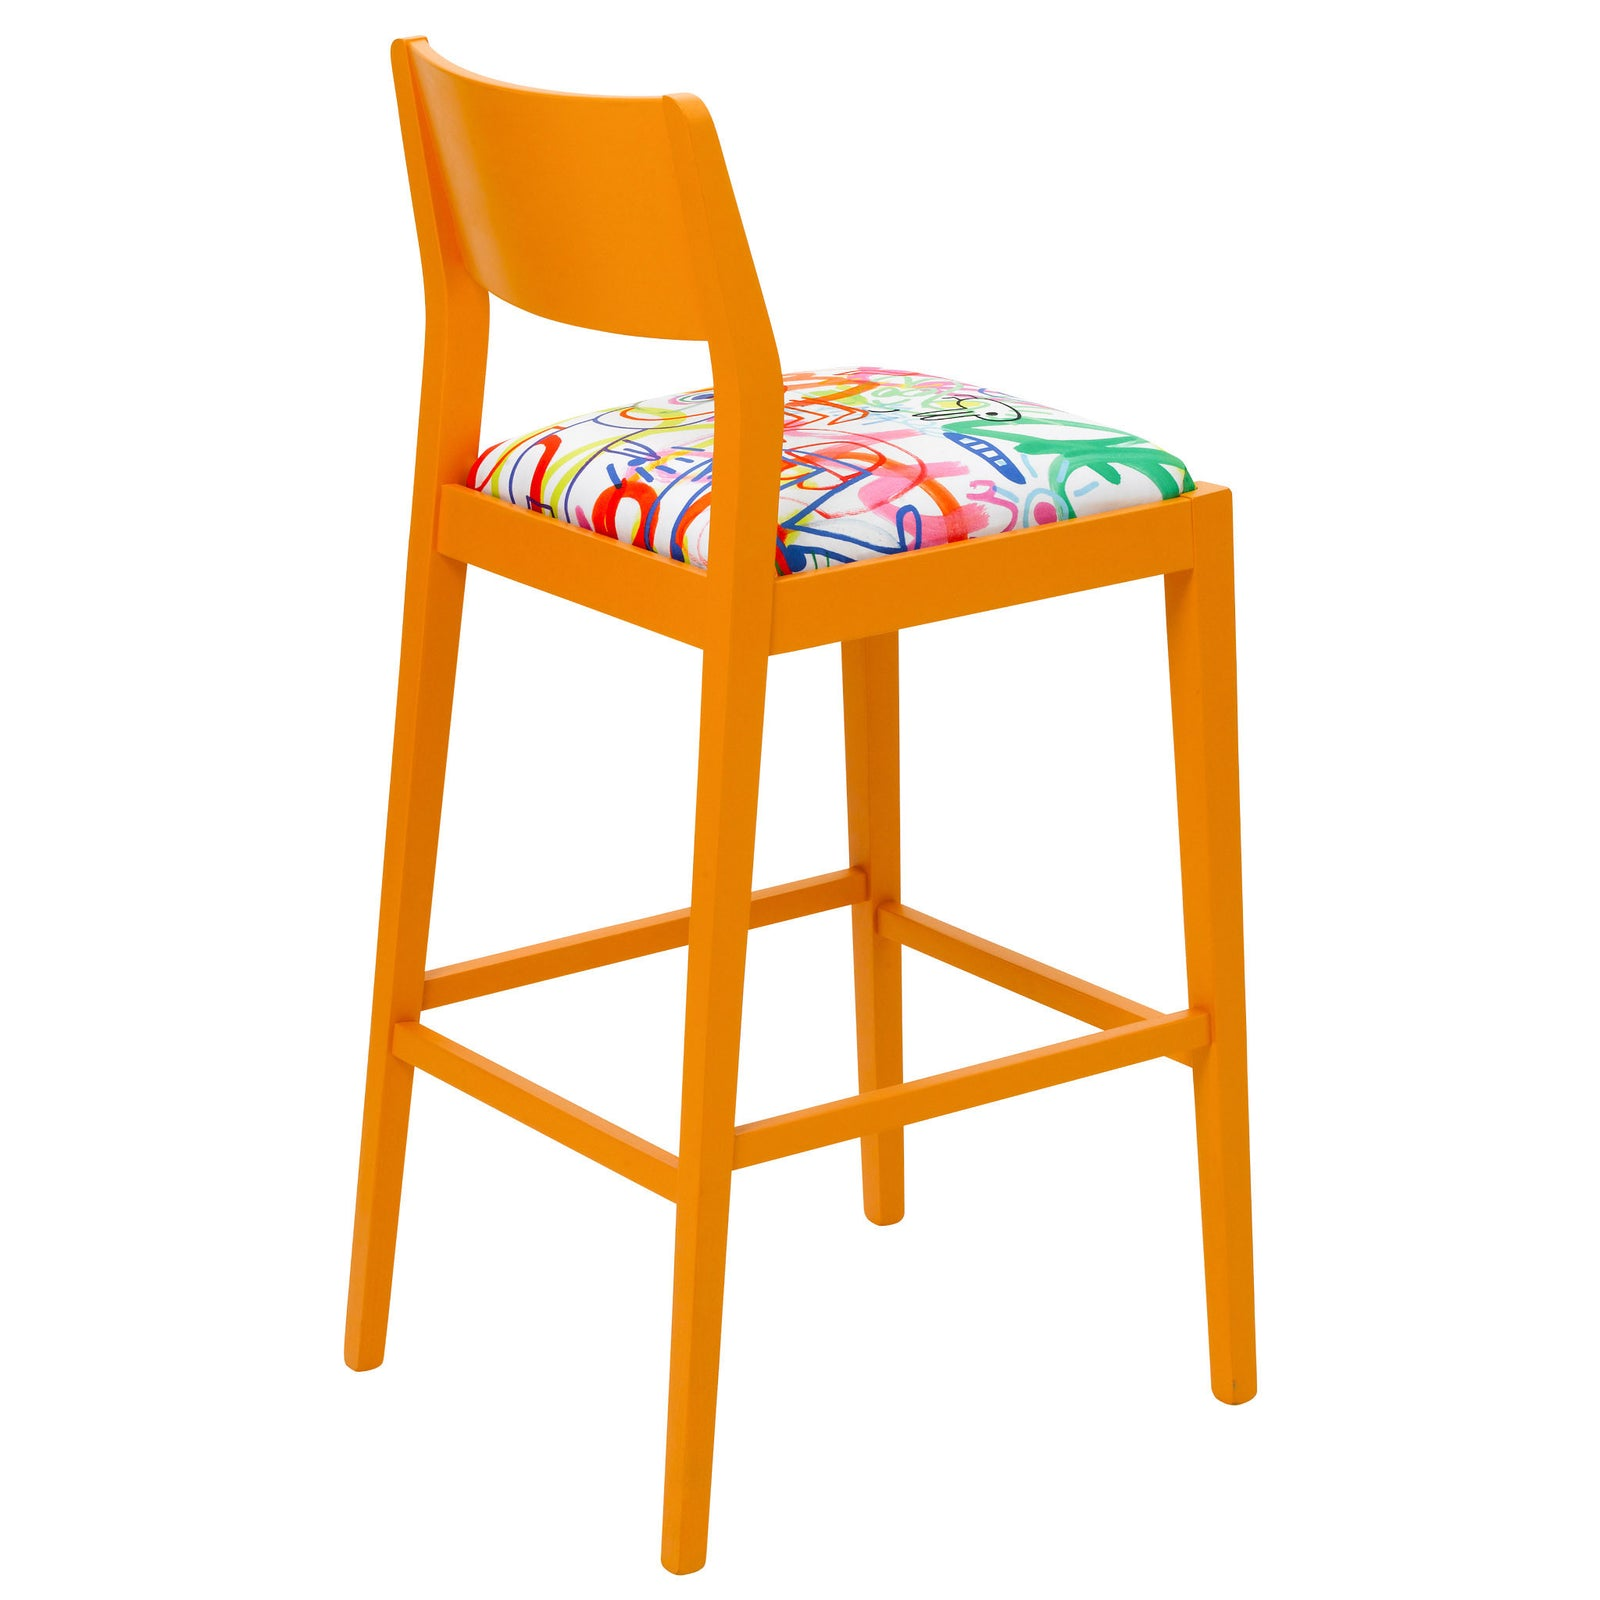 Rear view of the James designer barista bar stool upholstered in Rainbow Scrawl by Jon Burgerman finished in Marigold Eggshell.